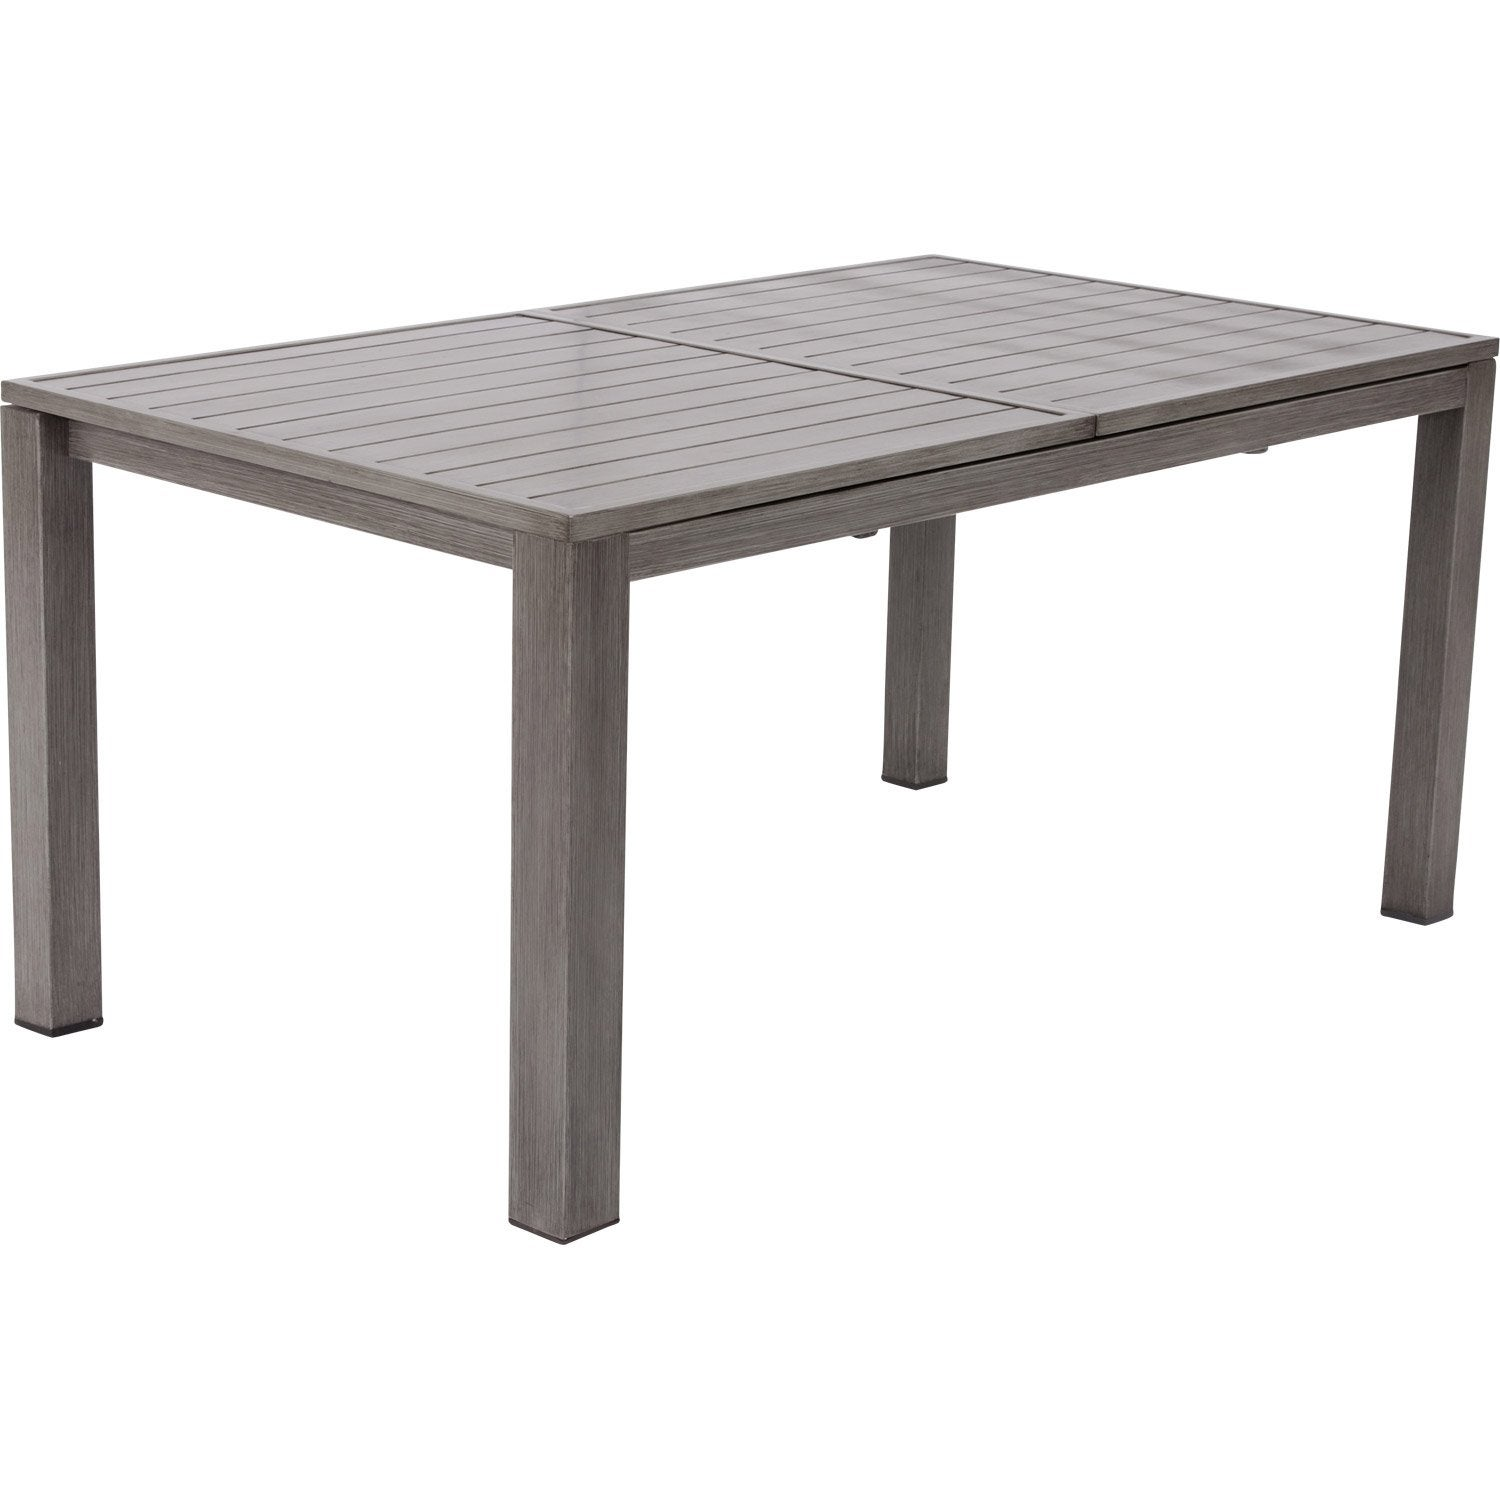 Table de jardin naterial antibes rectangulaire gris look bois 6 8 personnes leroy merlin - Table de jardin aluminium ...